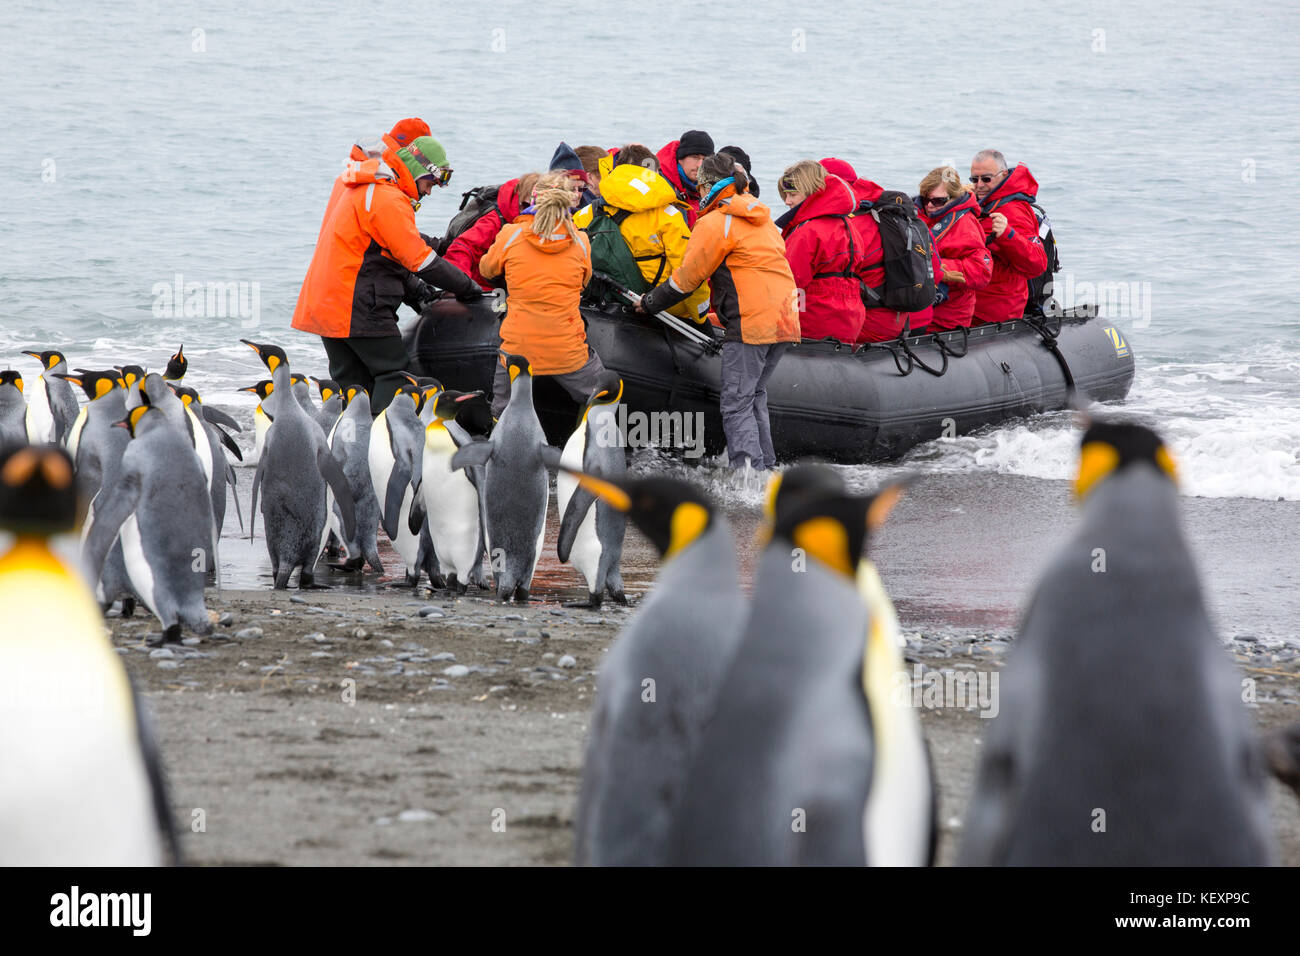 King Penguins on Salisbury Plain, South Georgia, with passengers from an expedition cruise. - Stock Image